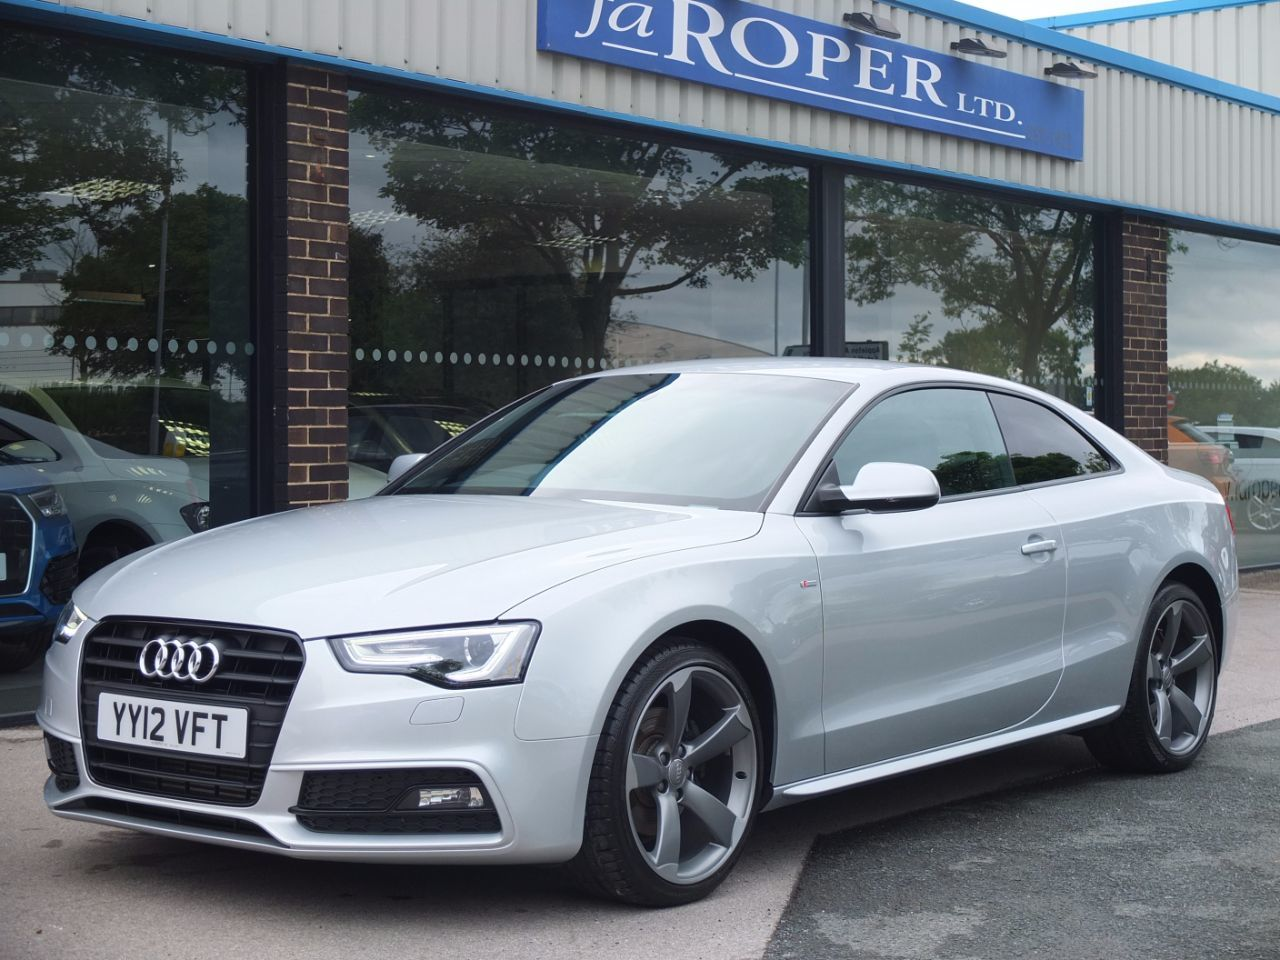 Audi A5 Coupe 2.0 TDI 177ps Black Edition Coupe Diesel Ice Silver MetallicAudi A5 Coupe 2.0 TDI 177ps Black Edition Coupe Diesel Ice Silver Metallic at fa Roper Ltd Bradford